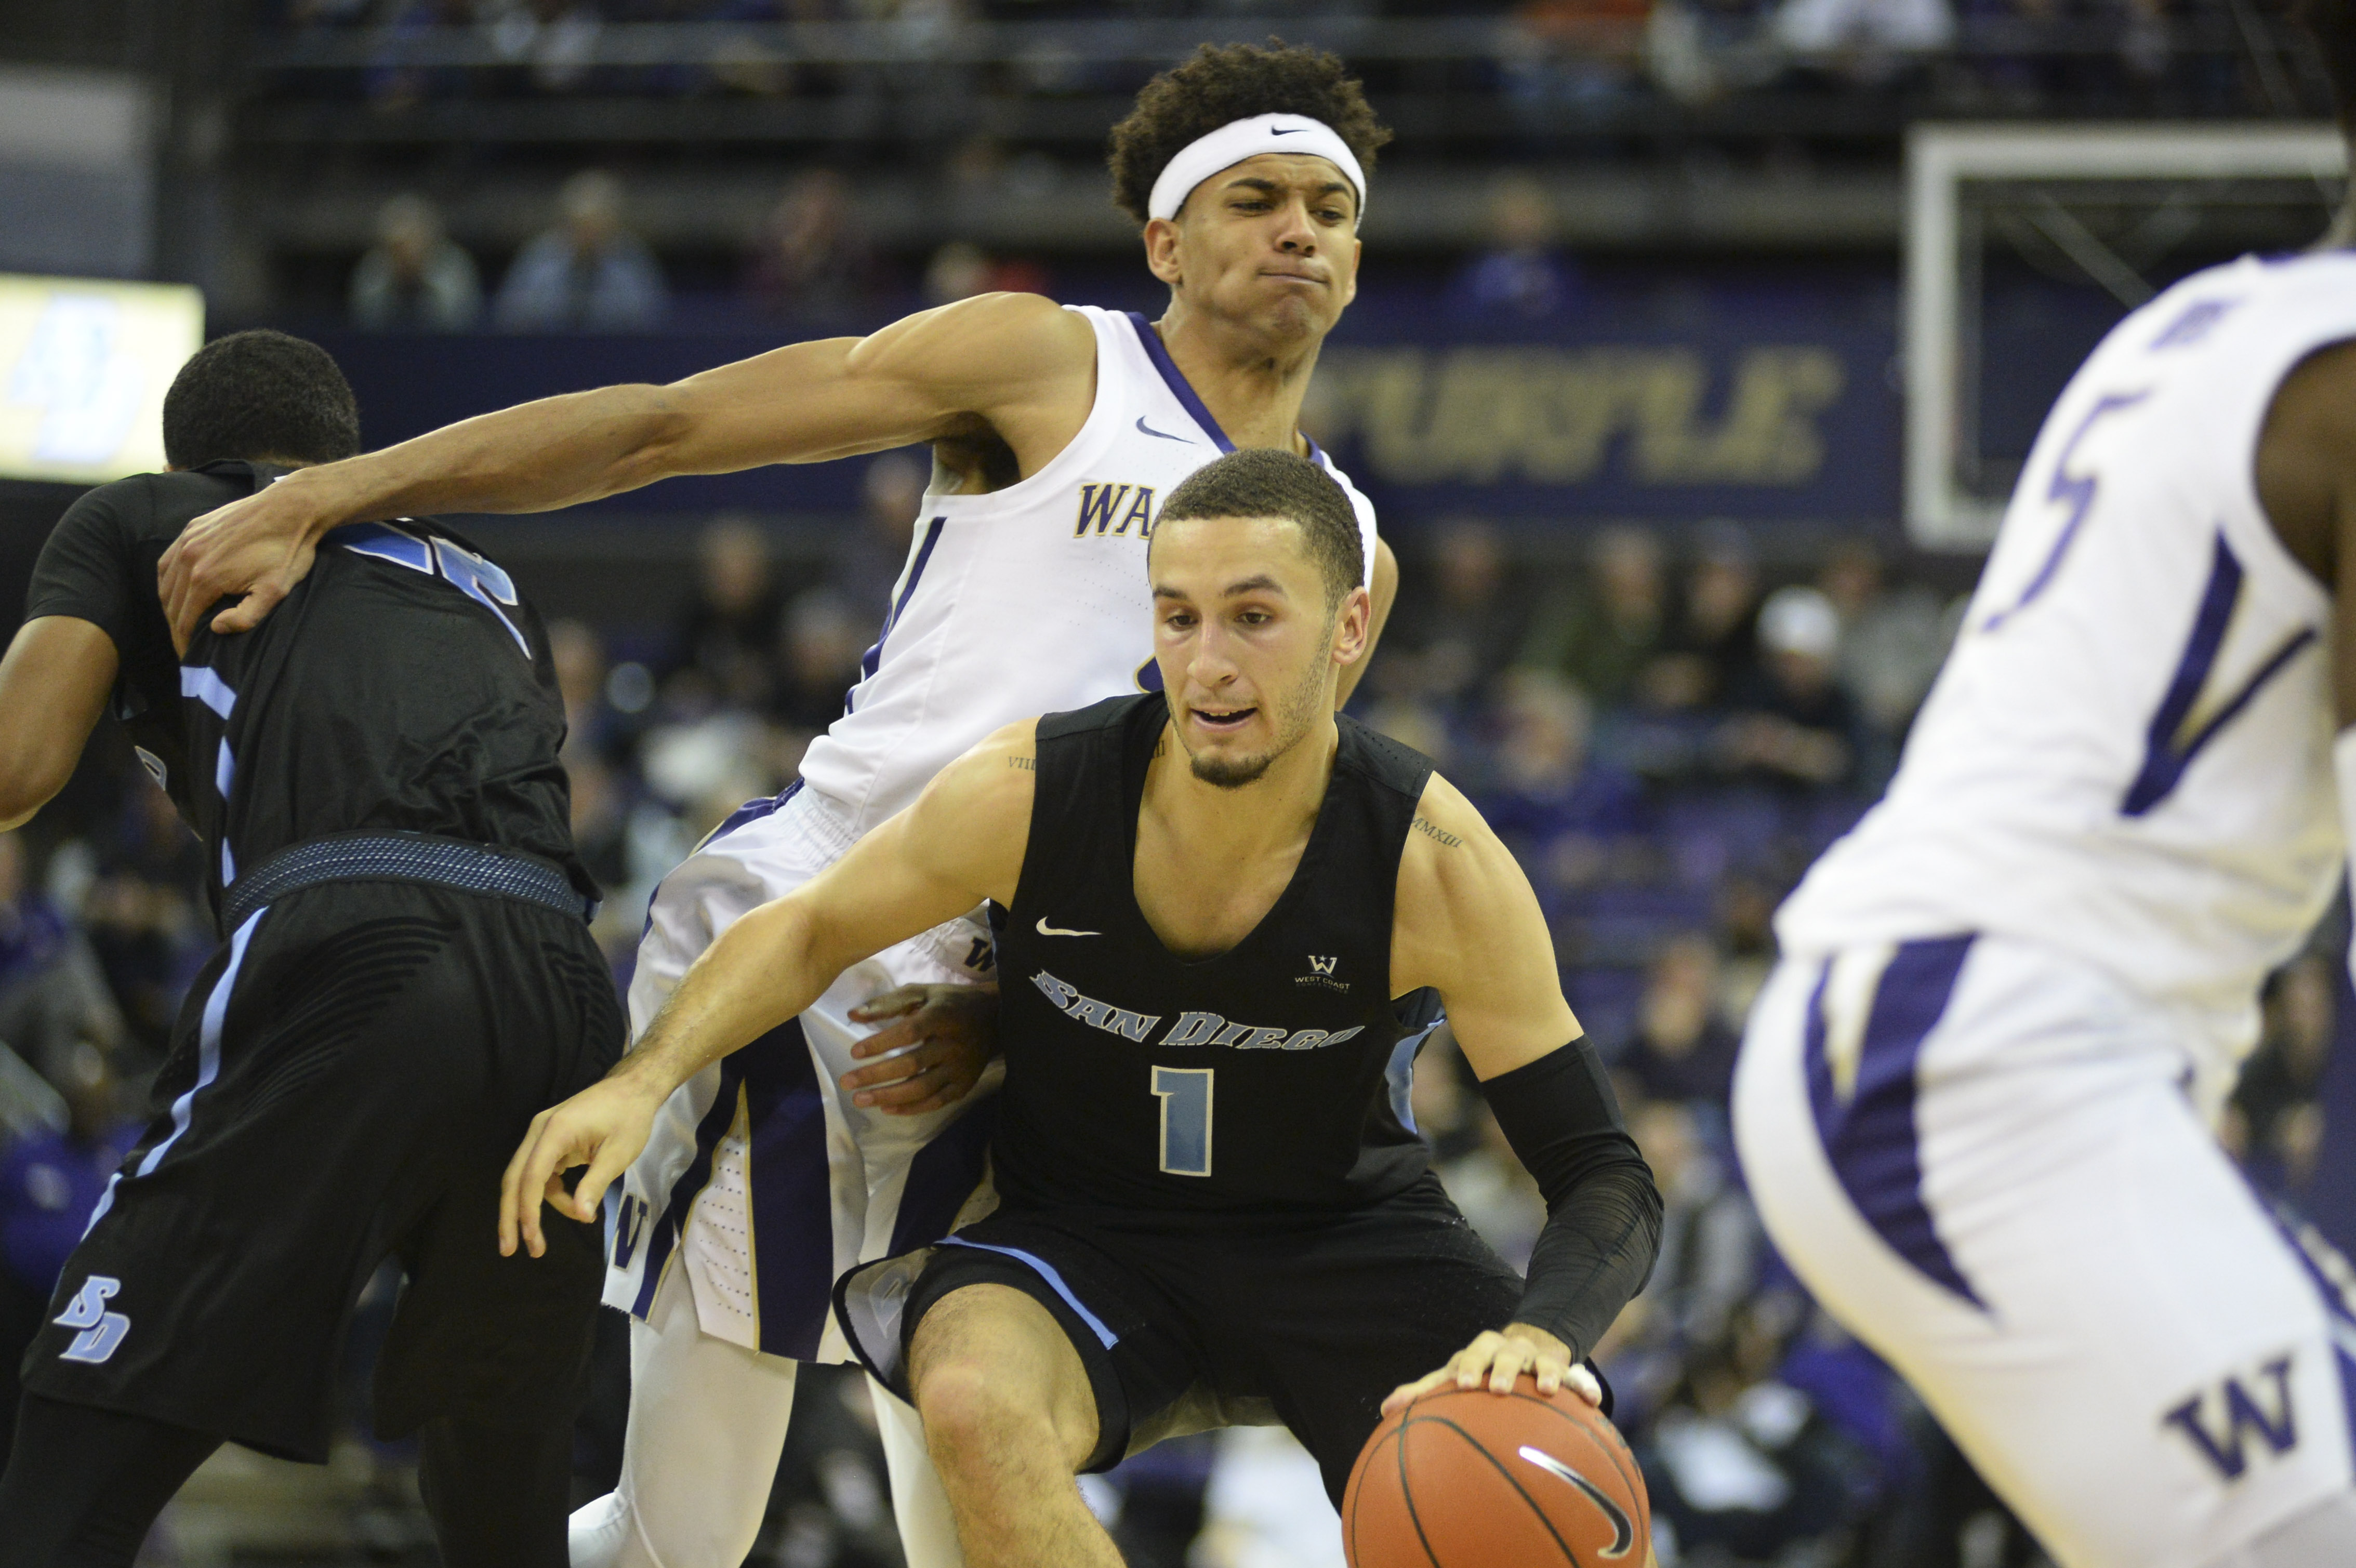 November 12, 2018: Tyler Williams (1) drives to the hoop against Matisse Thybulle (4) during a basketball game between the Washington Huskies and the University of San Diego. The game was played at Hec Ed Pavilion in Seattle, WA. Jeff Halstead / CSM(Credit Image: © Jeff Halstead/CSM via ZUMA Wire)